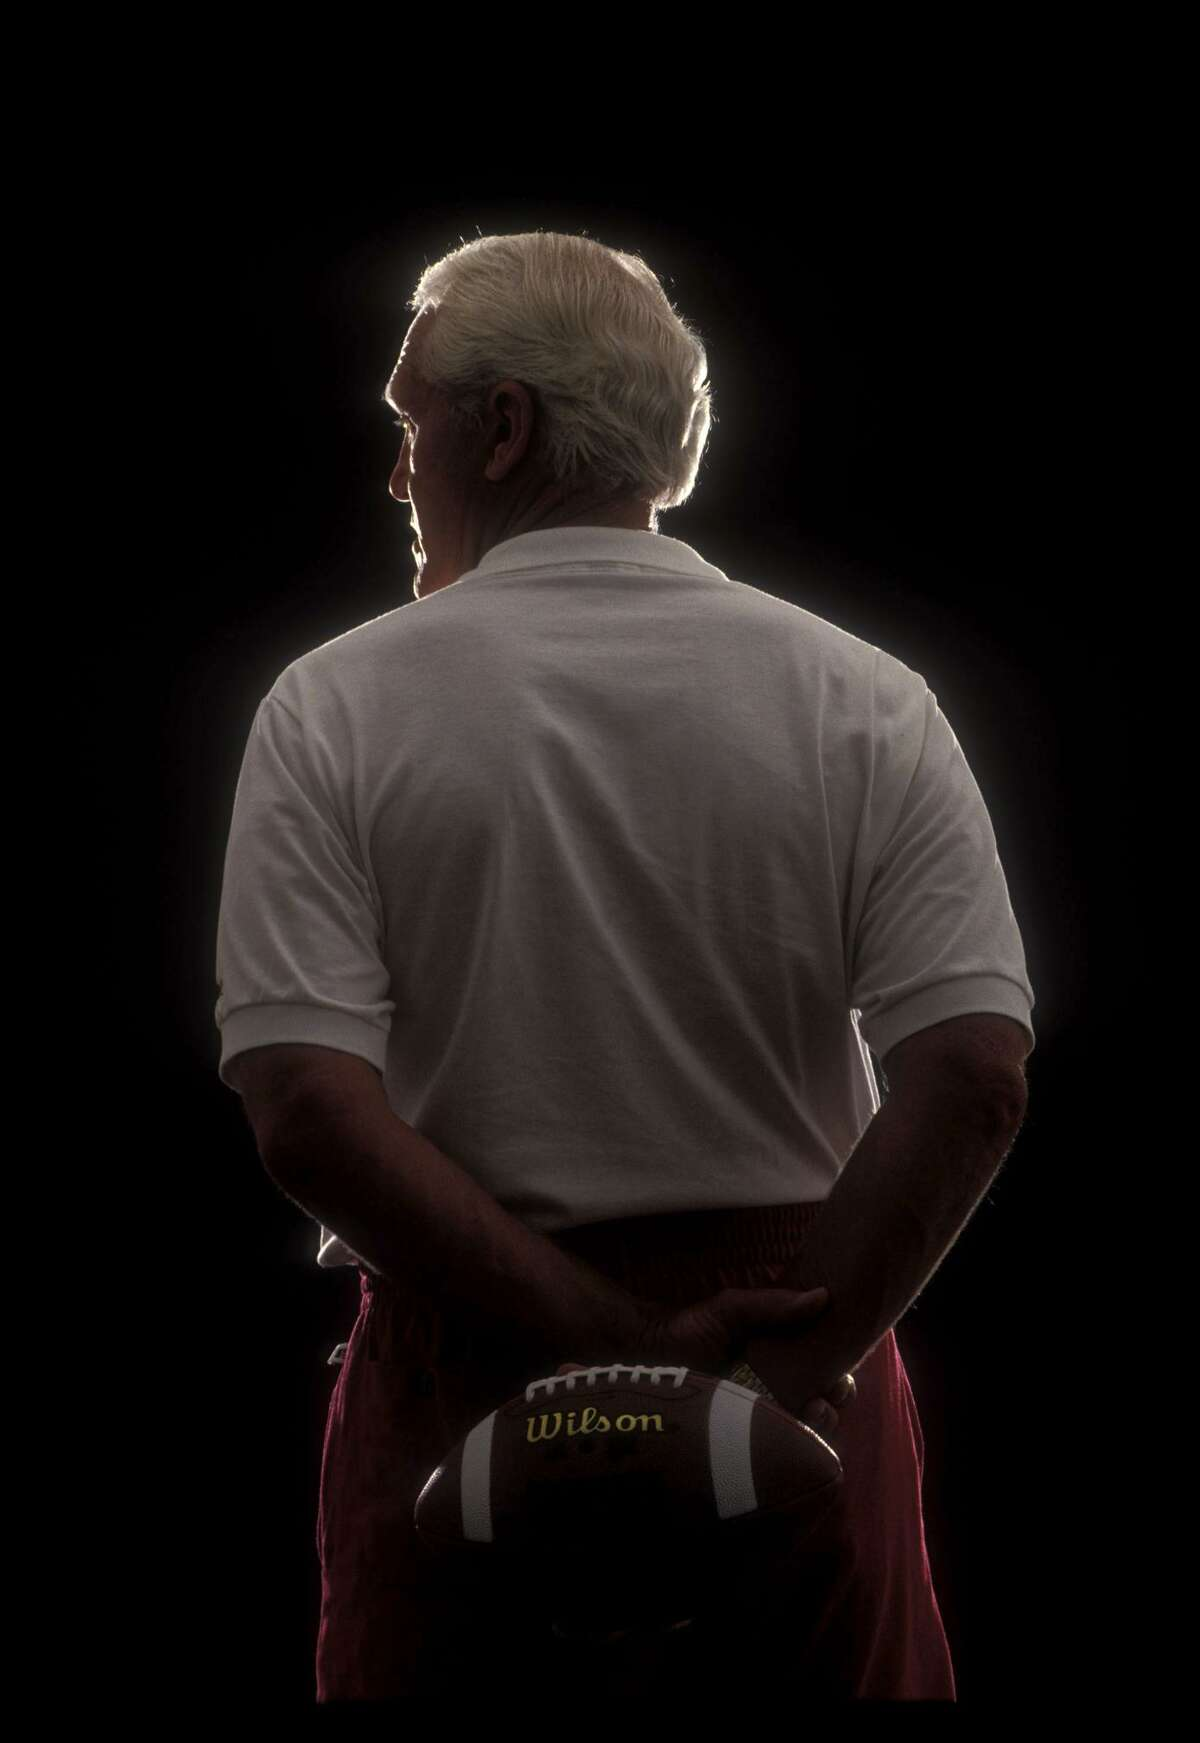 Bill Walsh, the inventor of the West Coast Offense. Walsh, guided the San Francisco 49ers to three Super Bowl championships and six NFC West division titles in his 10 years as head coach.